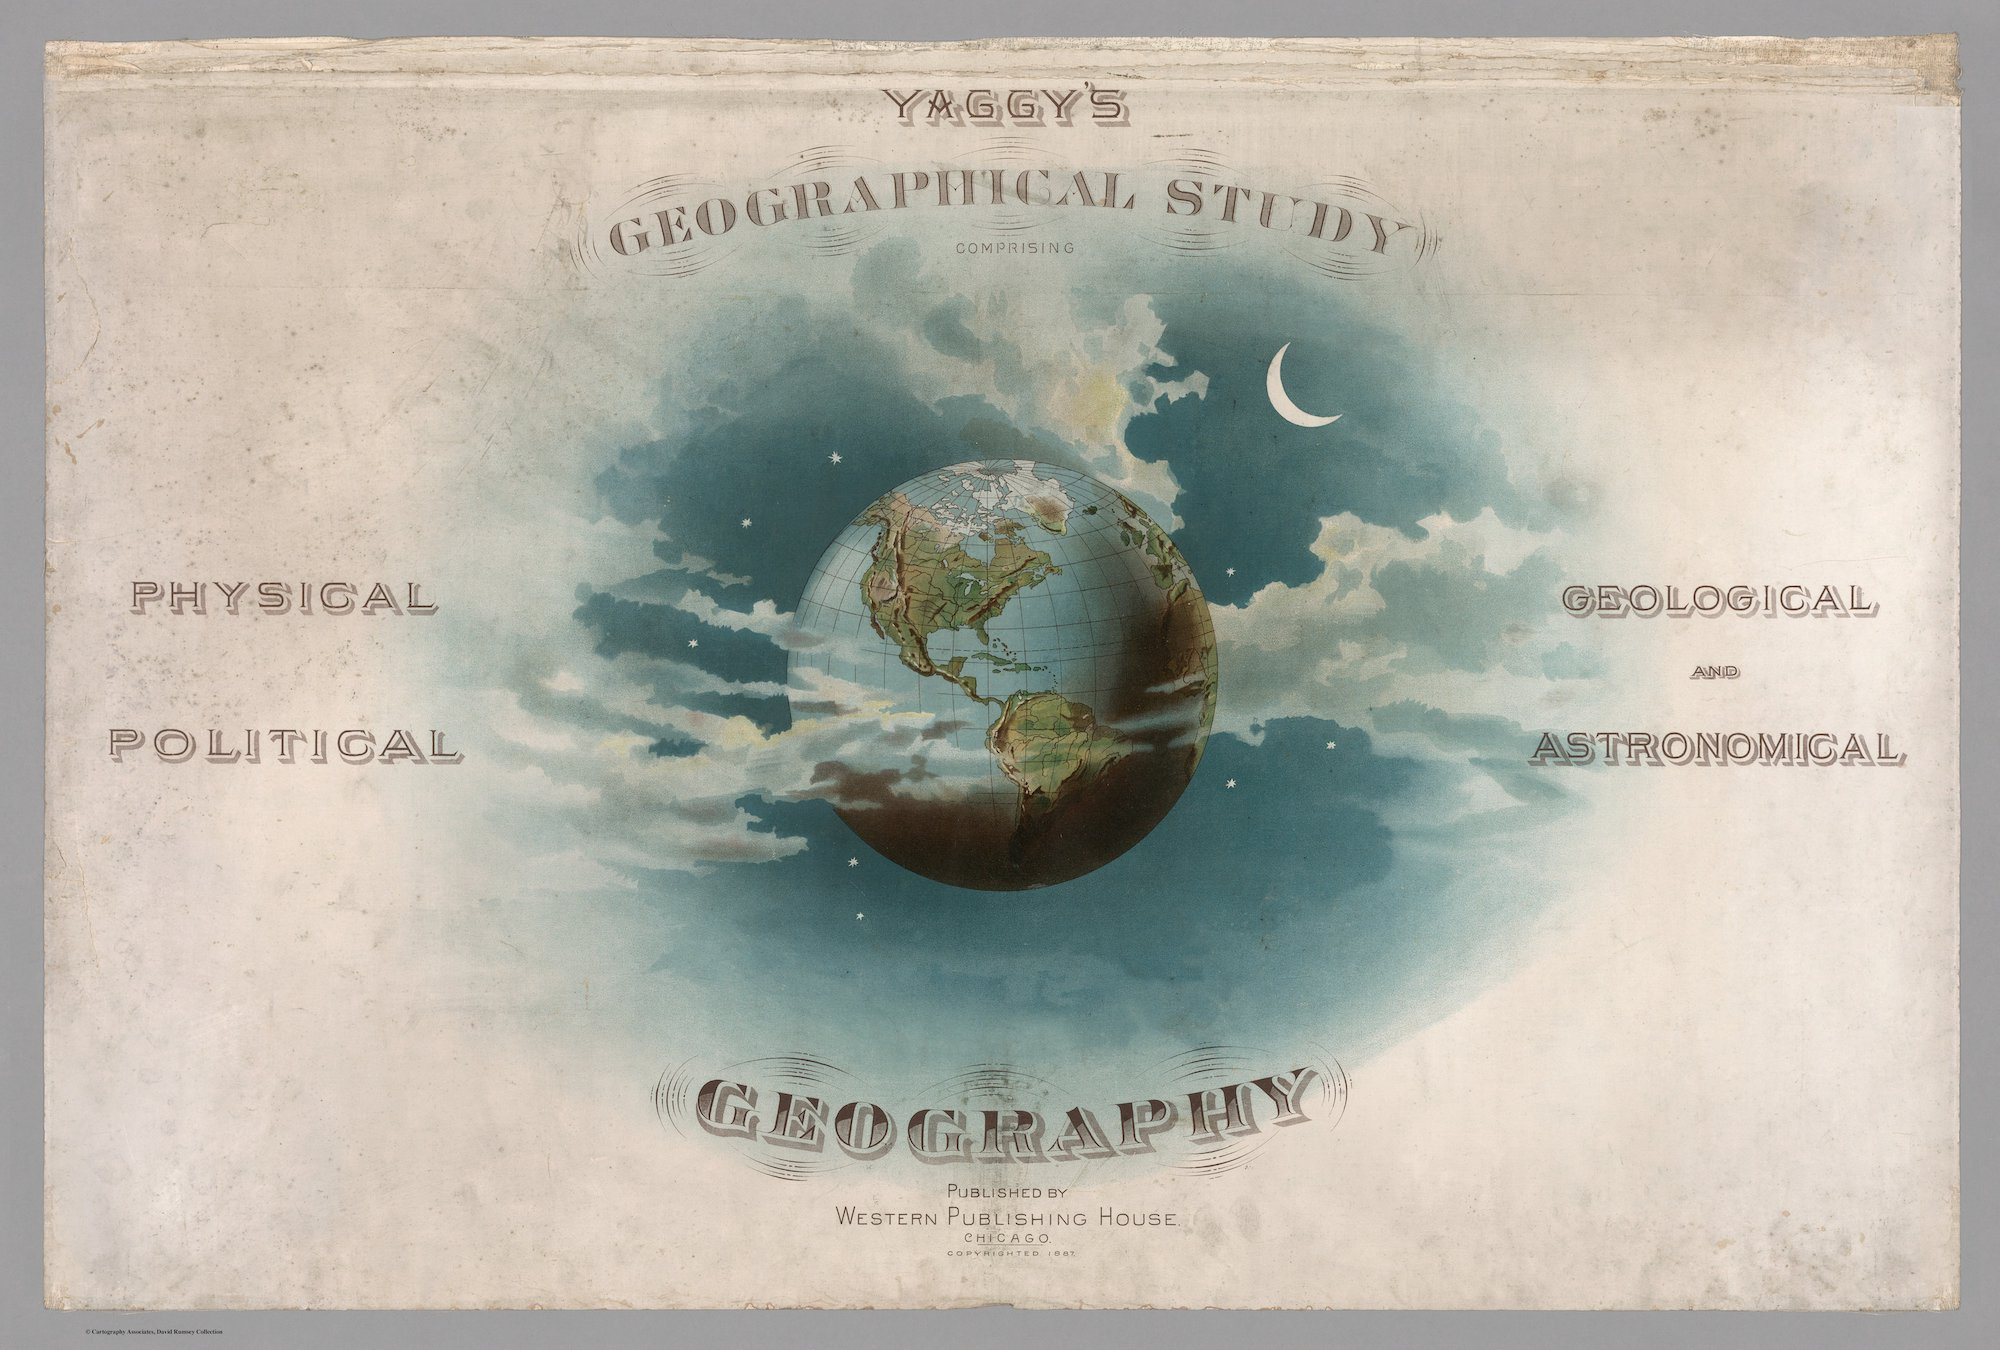 Yaggy, Levi Walter map world atlas 1800s